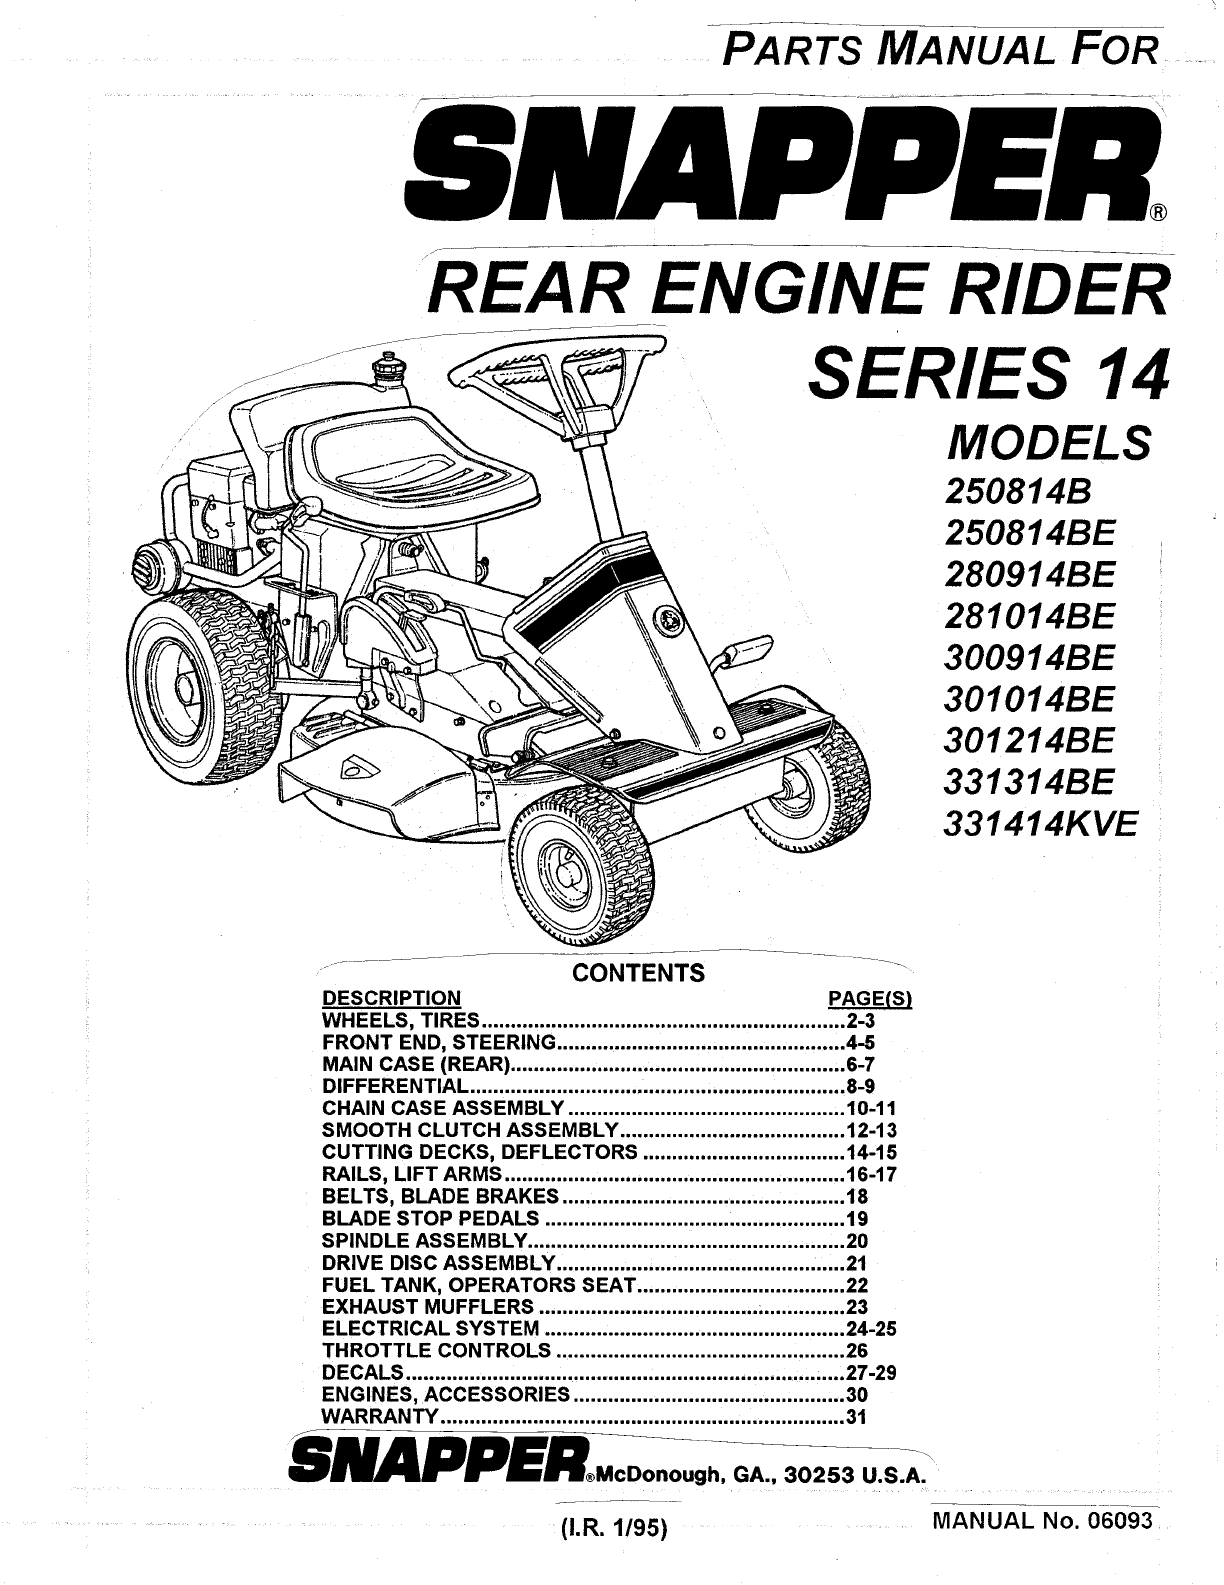 Ranch King Riding Mower Wiring Diagram on mtd yard machine wiring diagram